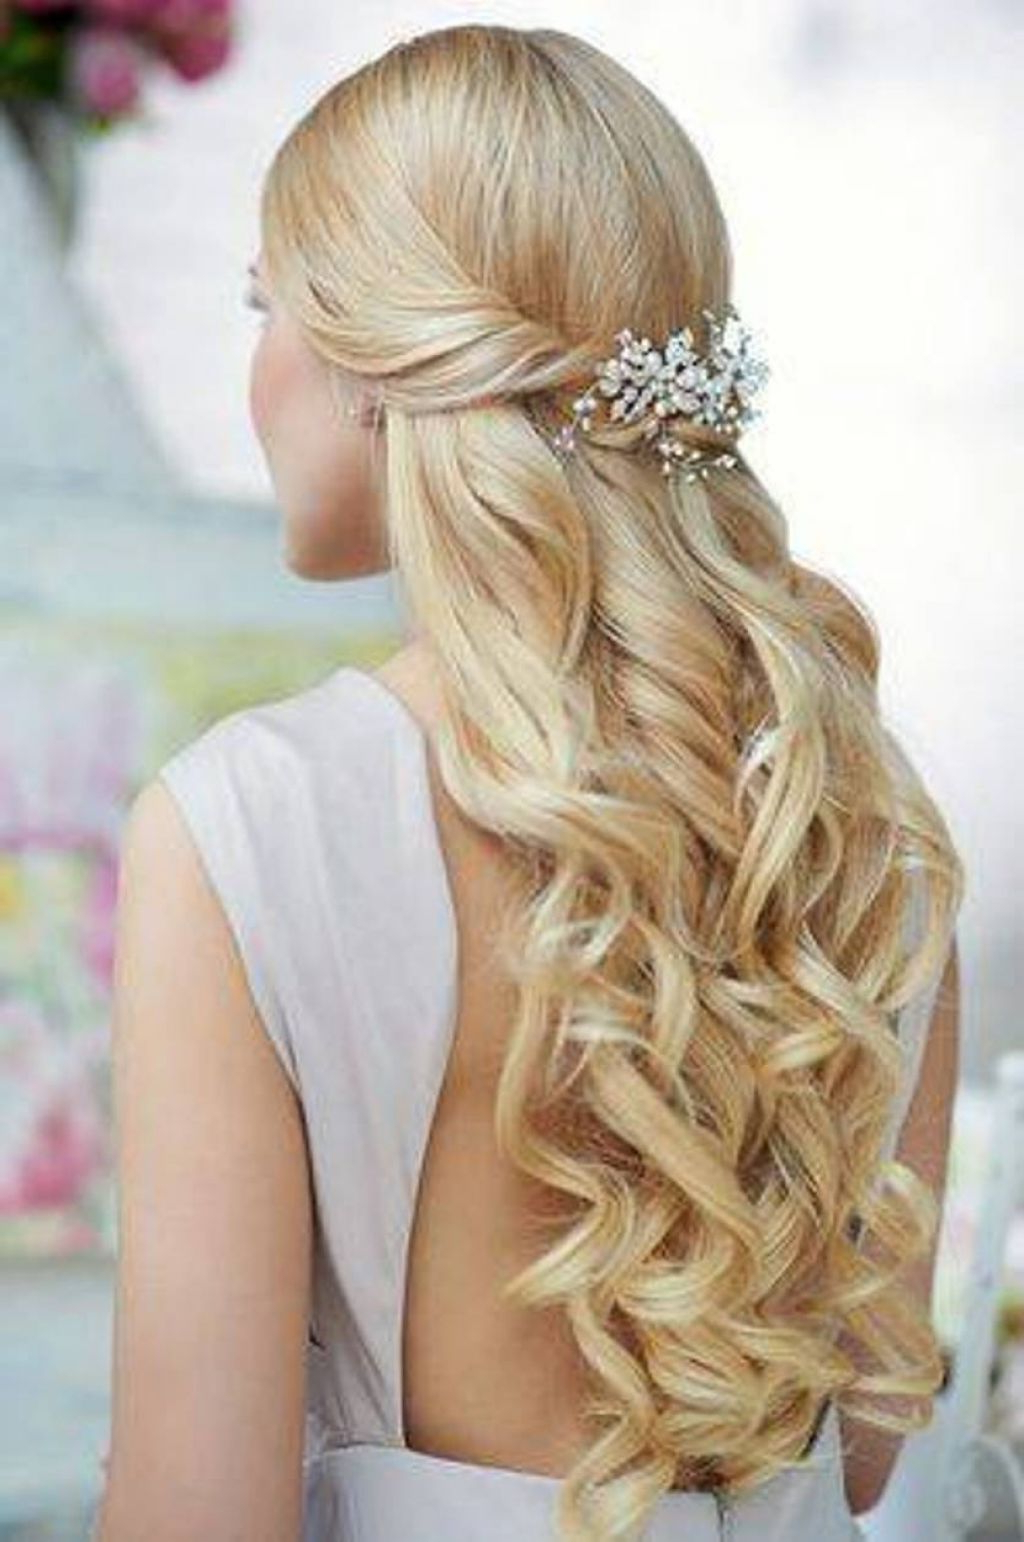 Fashionable Half Up Curls Hairstyles For Wedding For √ 24+ Awesome Wedding Hairstyles Half Up Half Down: Curly (View 6 of 20)